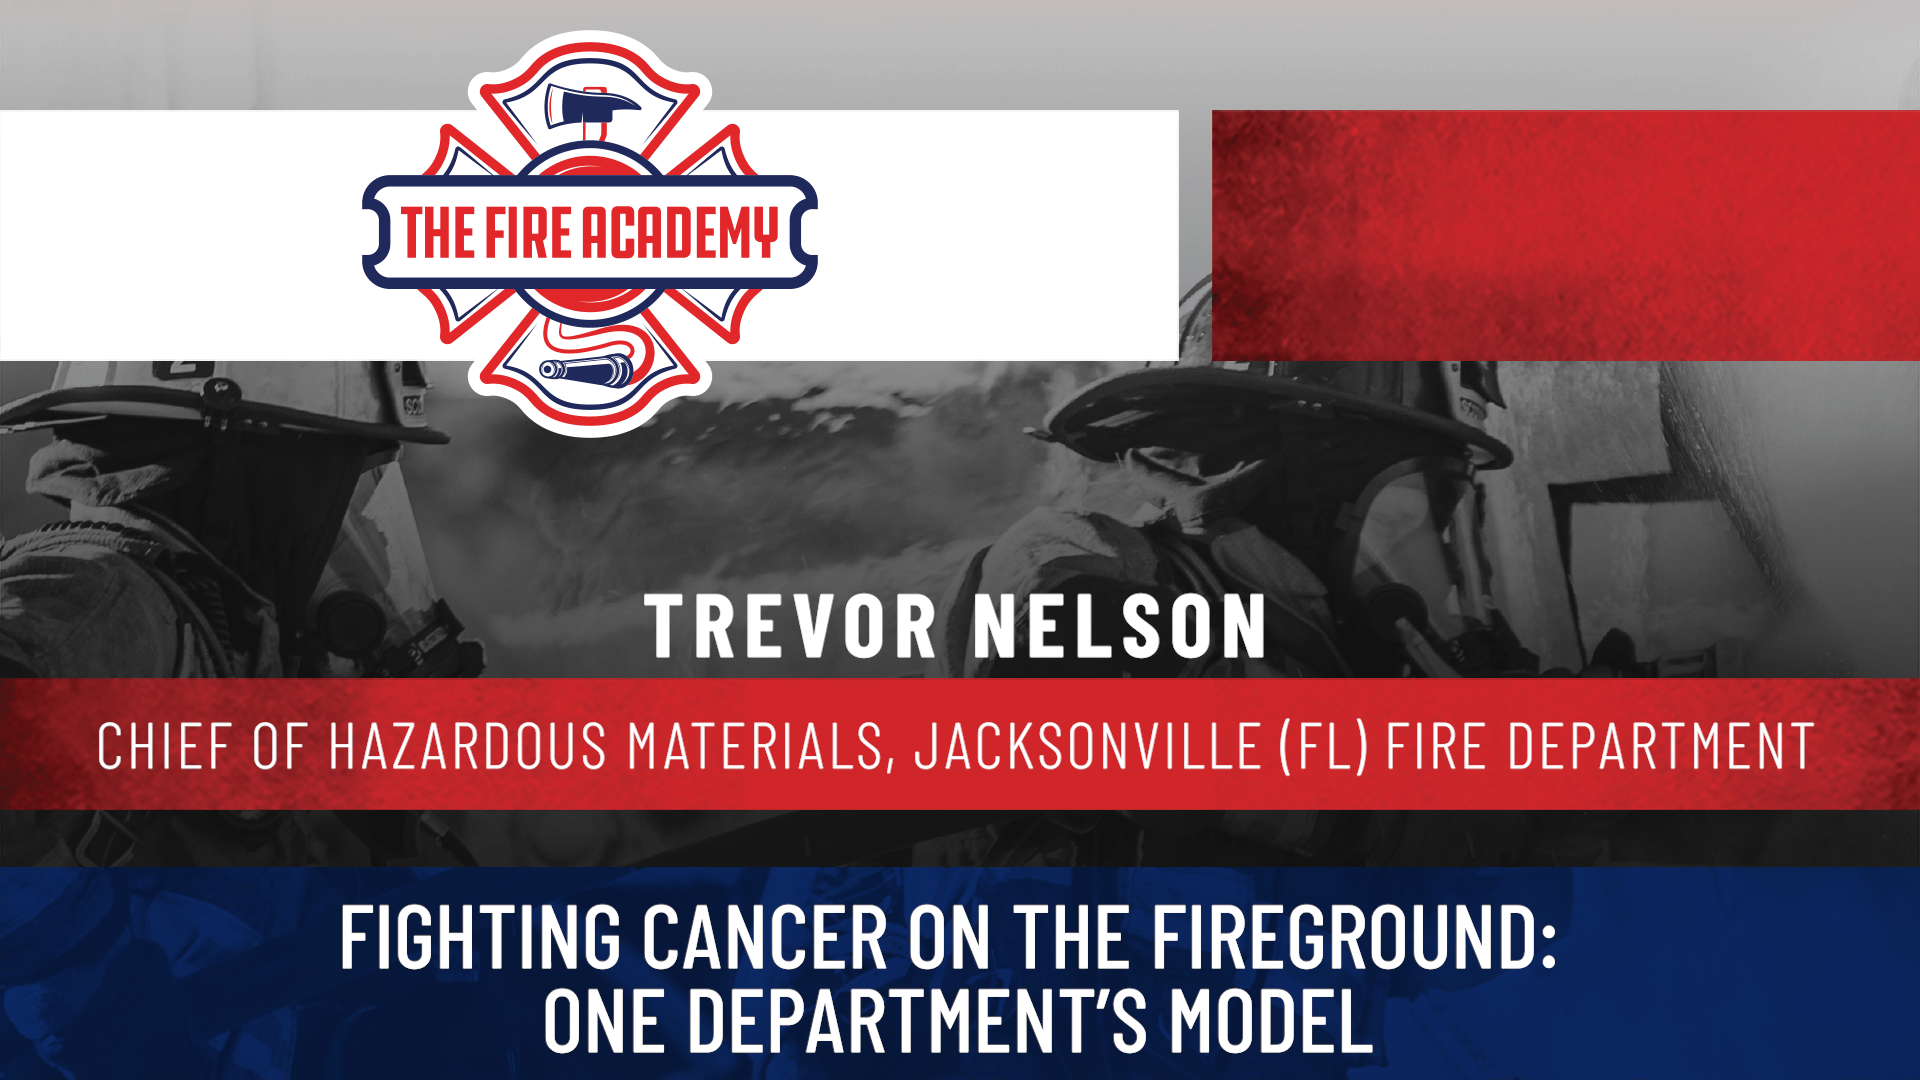 Fighting Cancer on the Fireground: One Department's Model